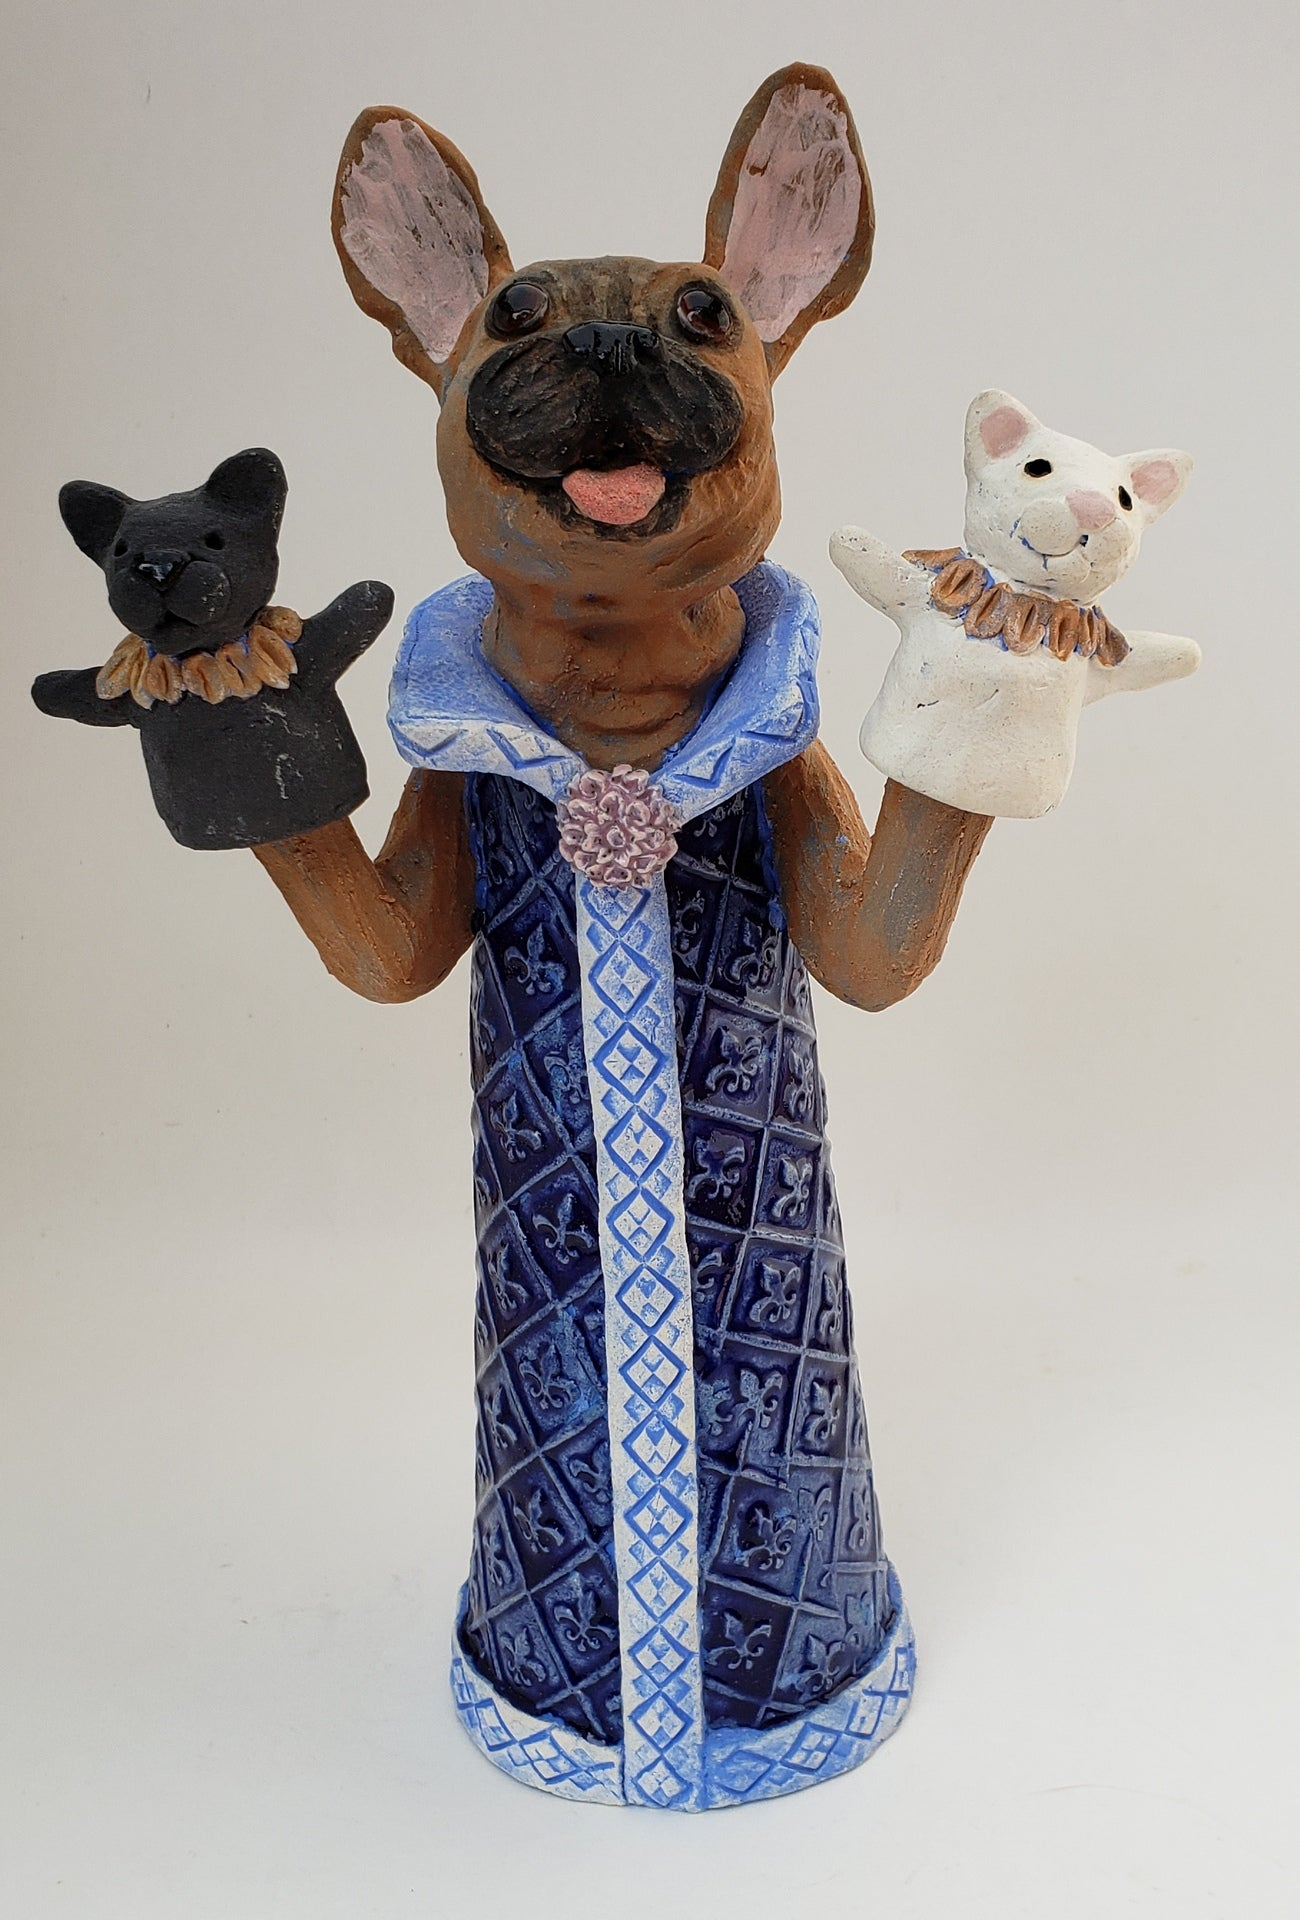 Reigning Cats by Dog Puppet Sculpture - Artworks by Karen Fincannon